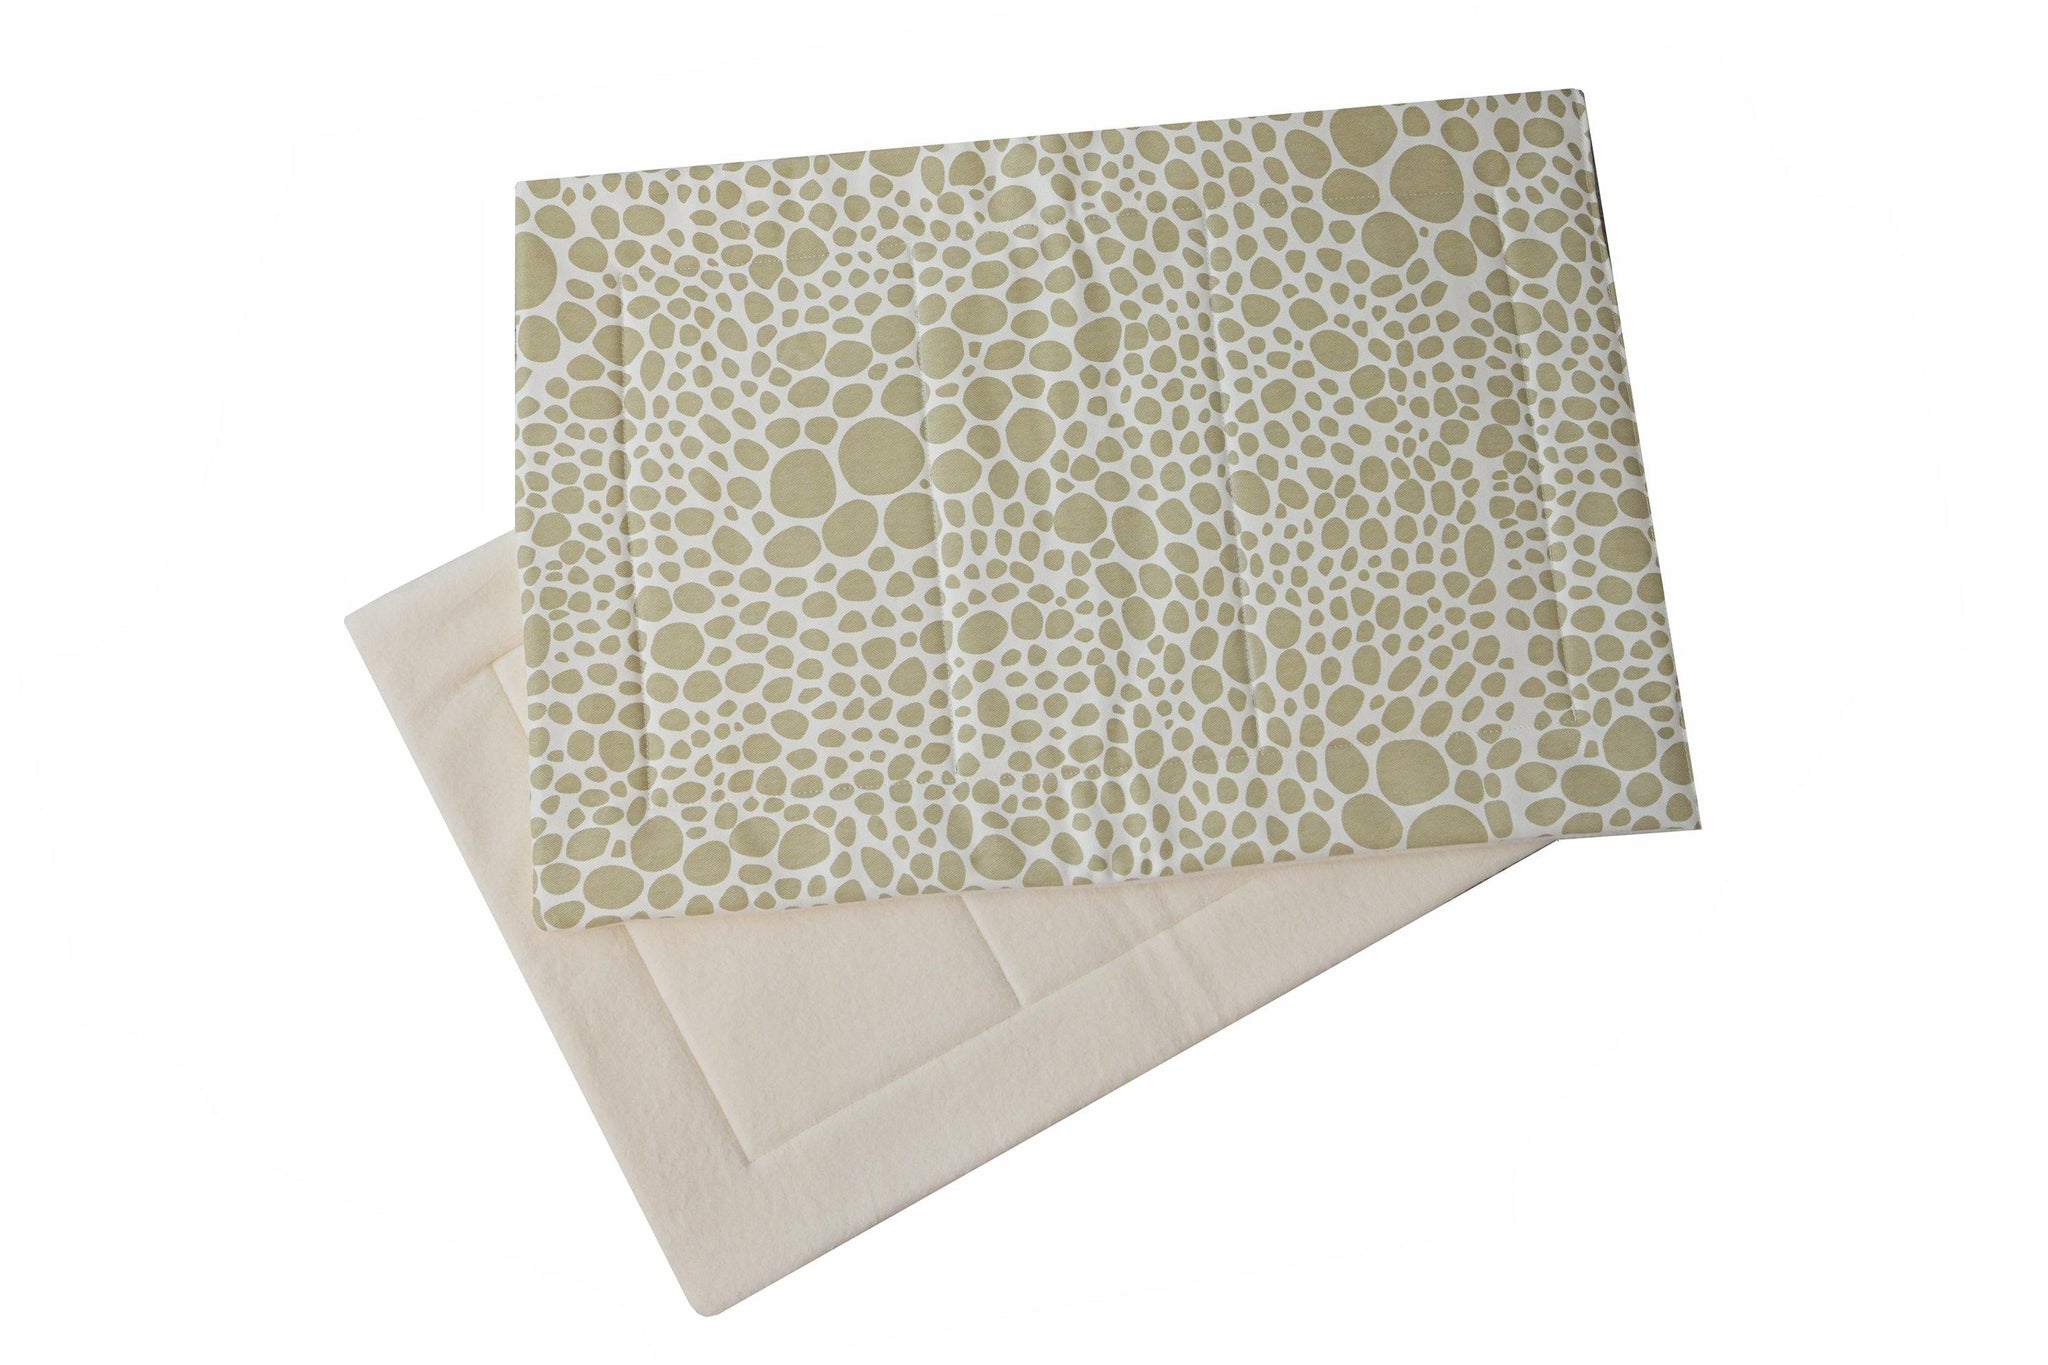 dog crate pads off white and tan pebble pattern